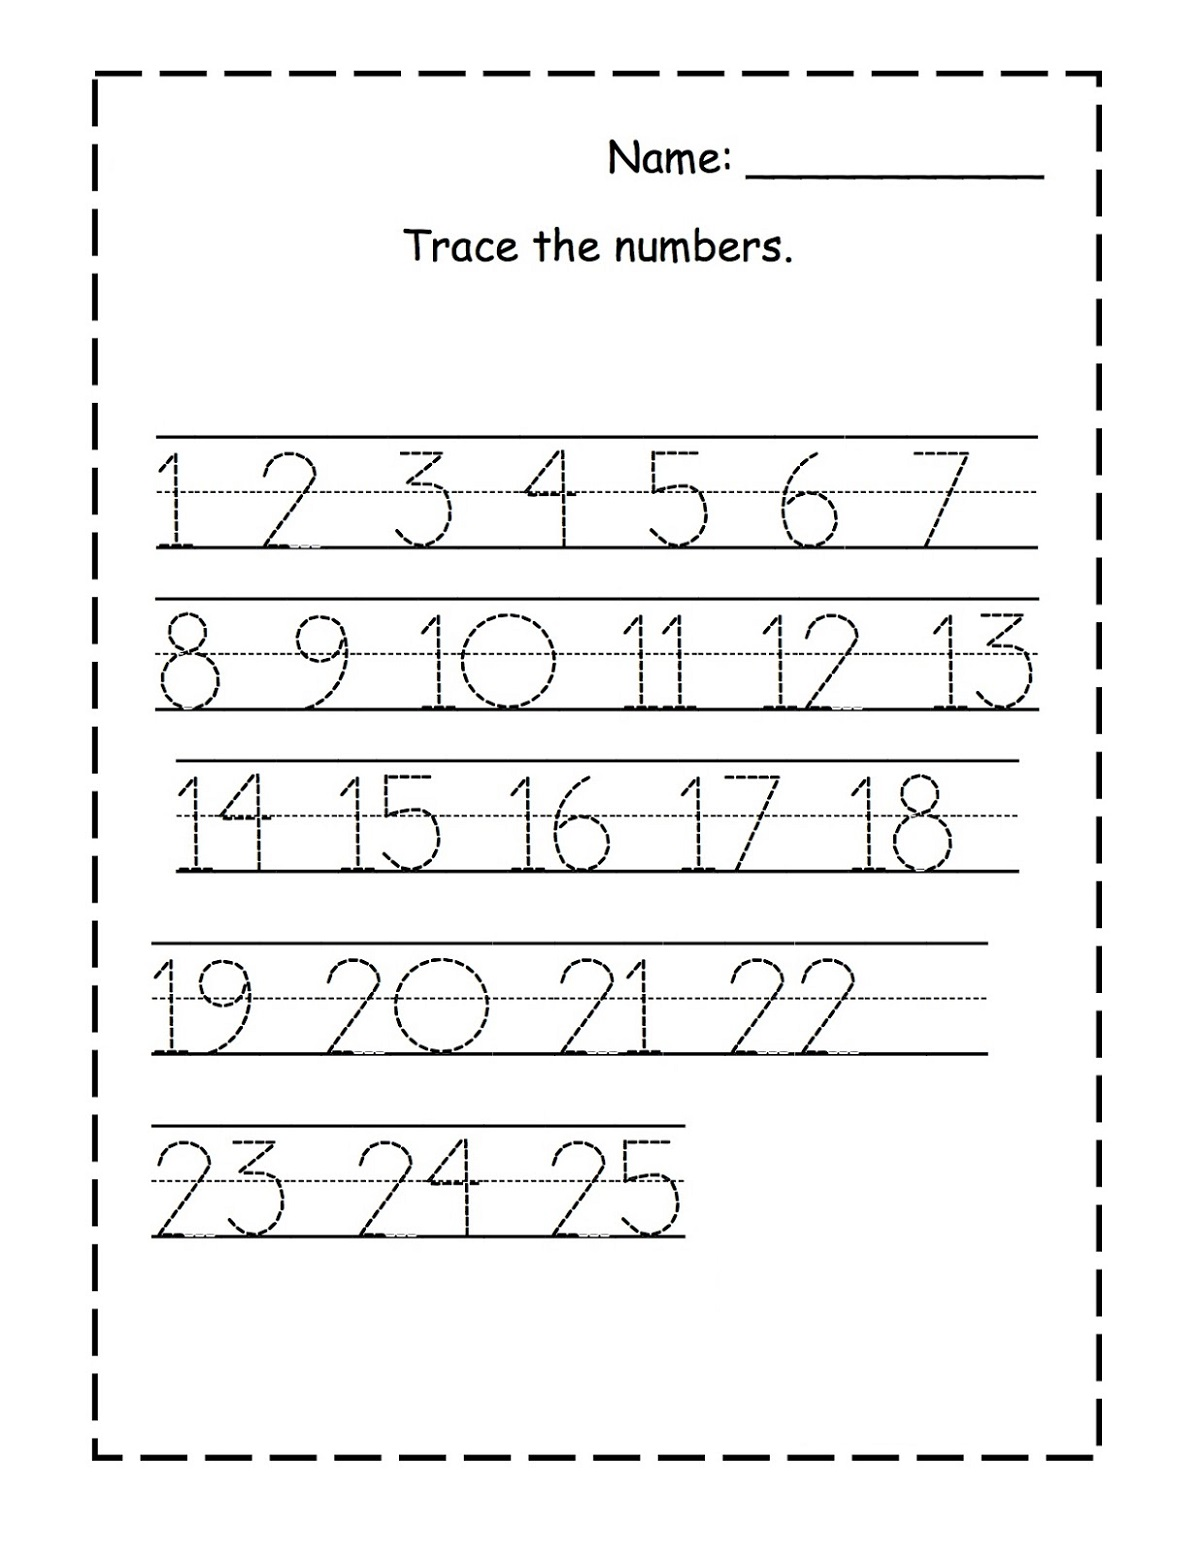 trace-number-worksheets-25